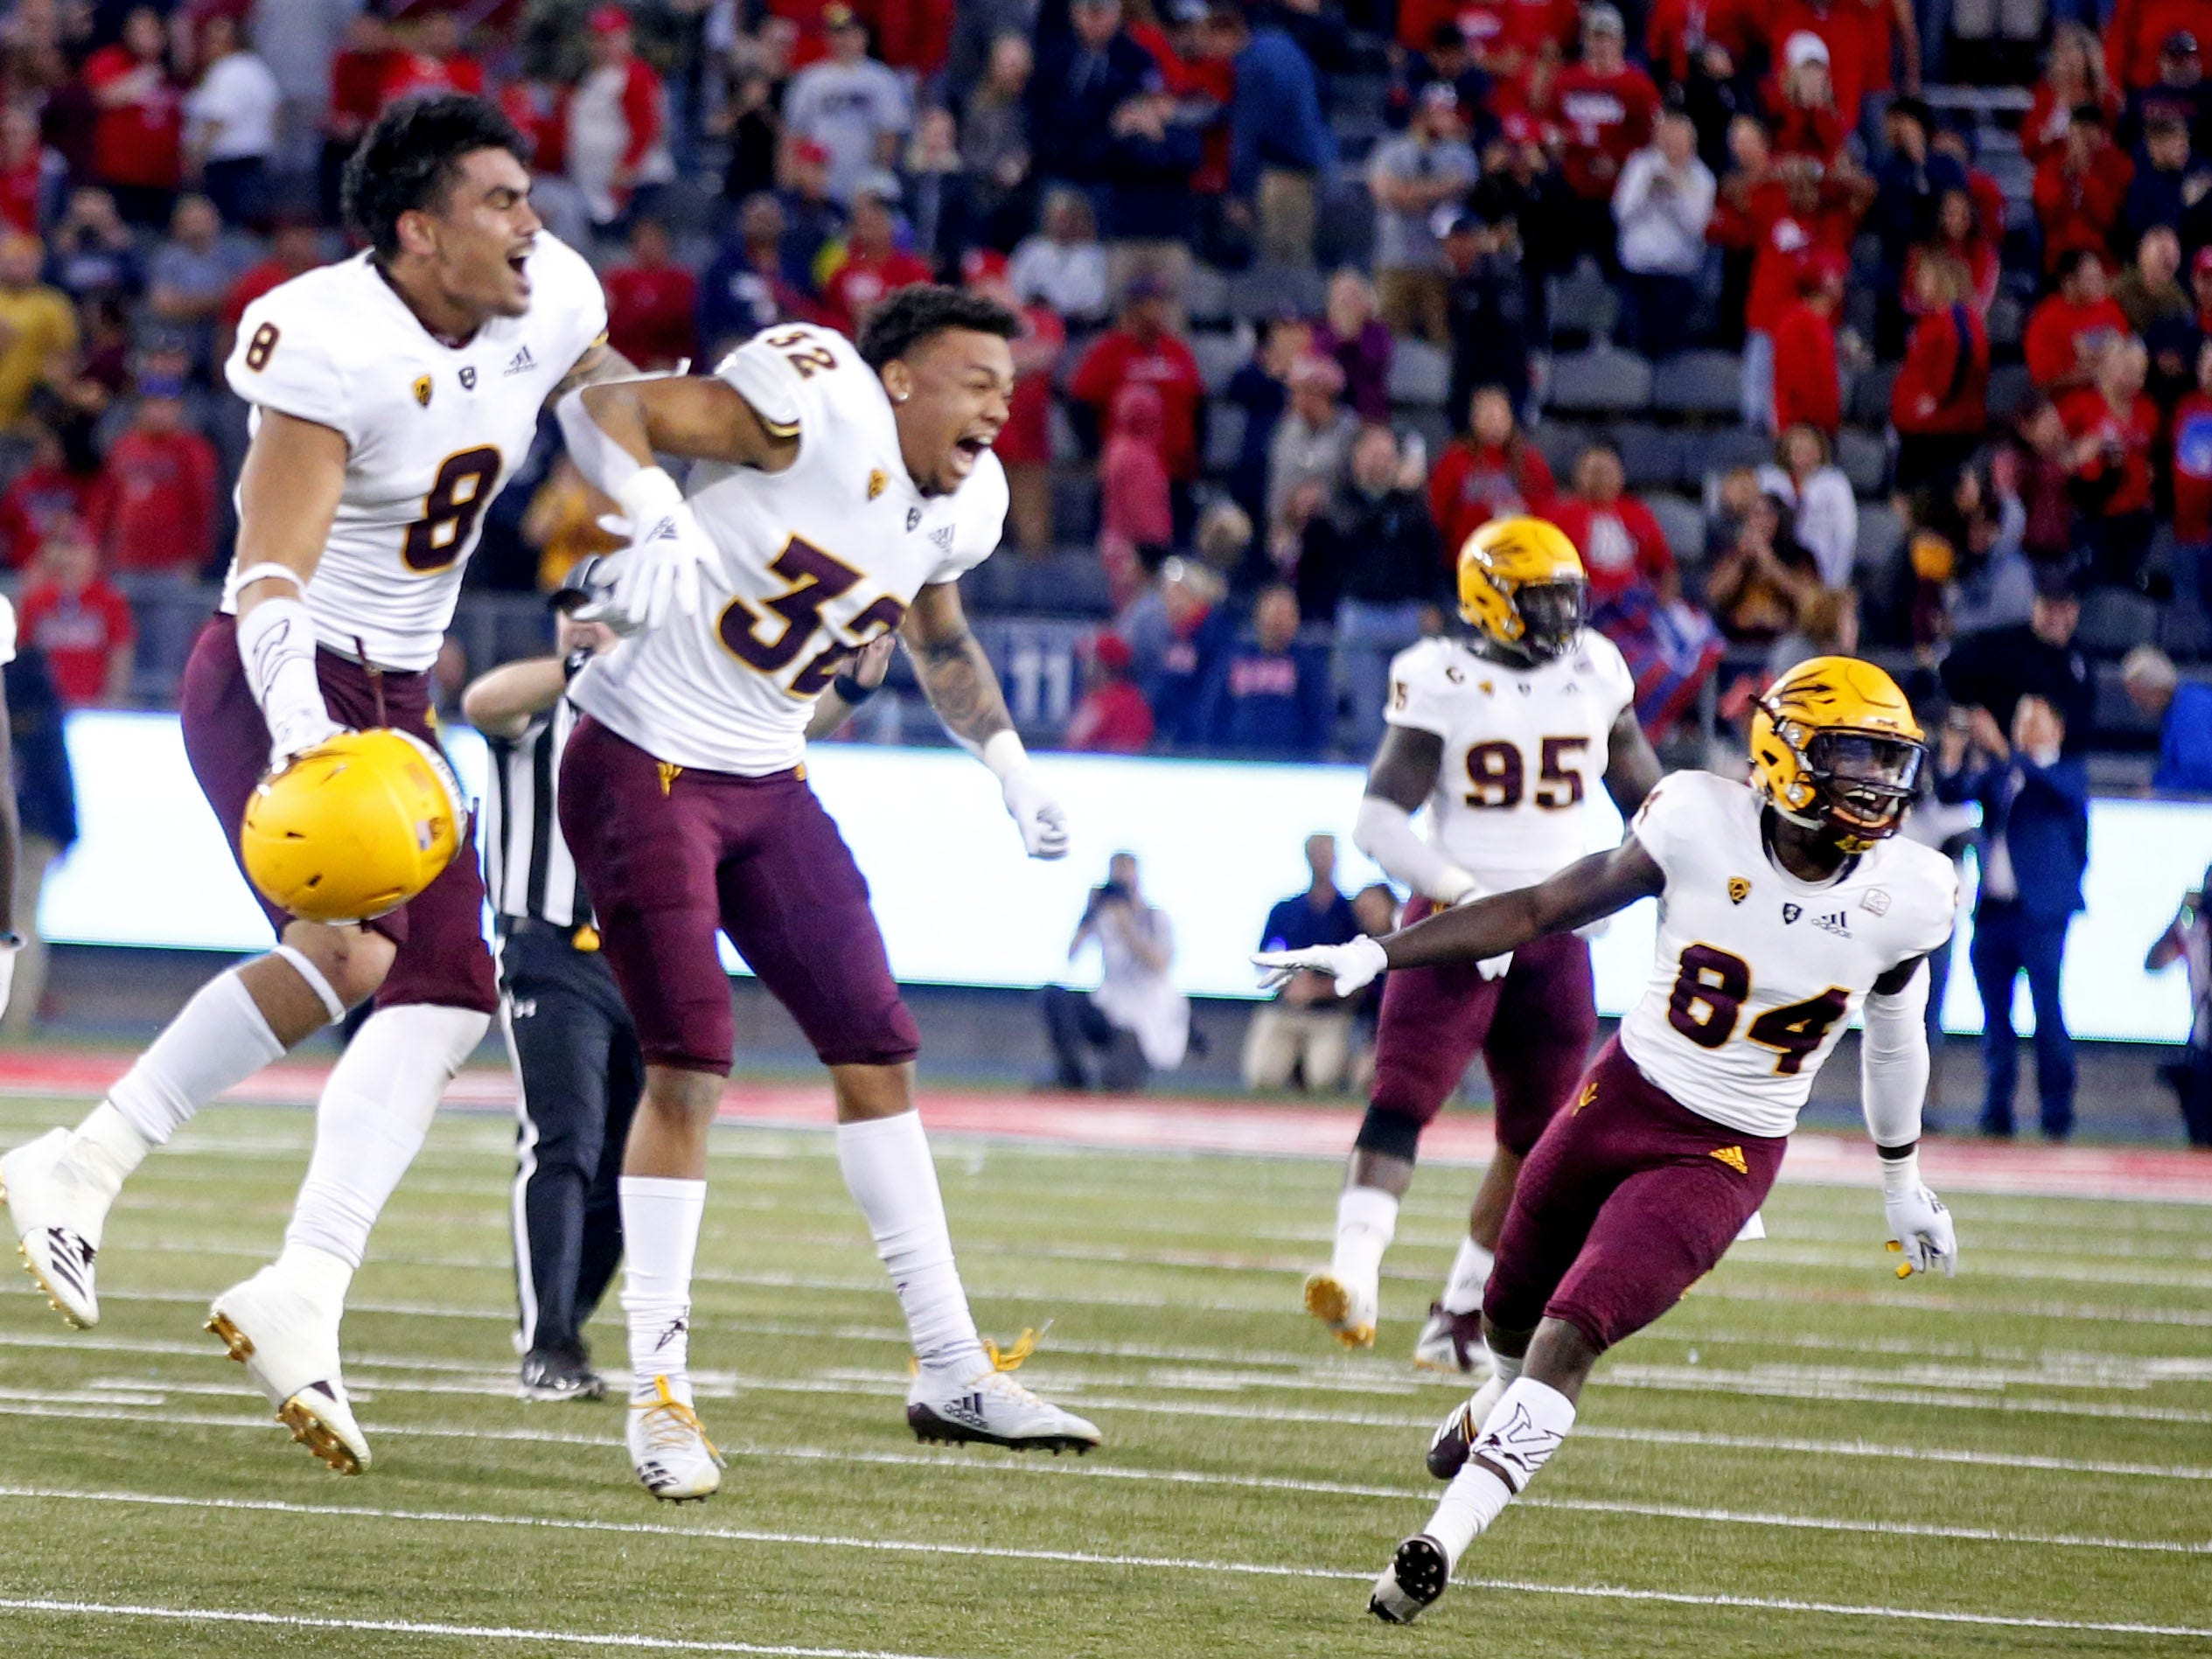 Arizona State Sun Devils players celebrate celebrate after Arizona Wildcats missed a field goal during the Territorial Cup football game at Arizona Stadium in Tucson on November 24.